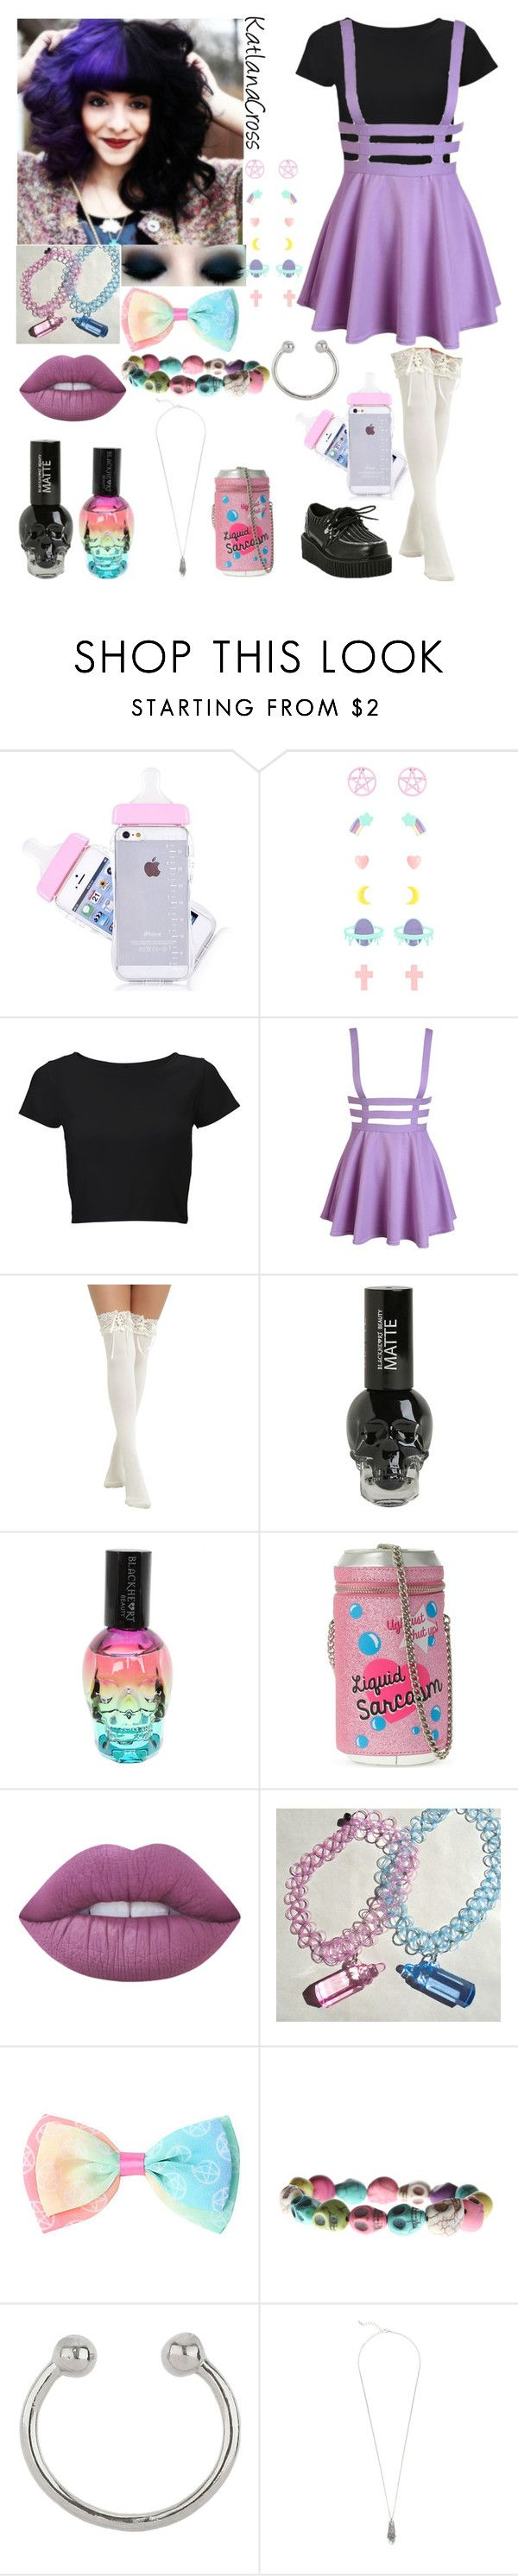 """A Day with Melanie Martinez"" by katlanacross ❤ liked on Polyvore featuring Lipsy, Skinnydip, Lime Crime, Miss Selfridge, contestentry, melaniemartinez and ADayWith"